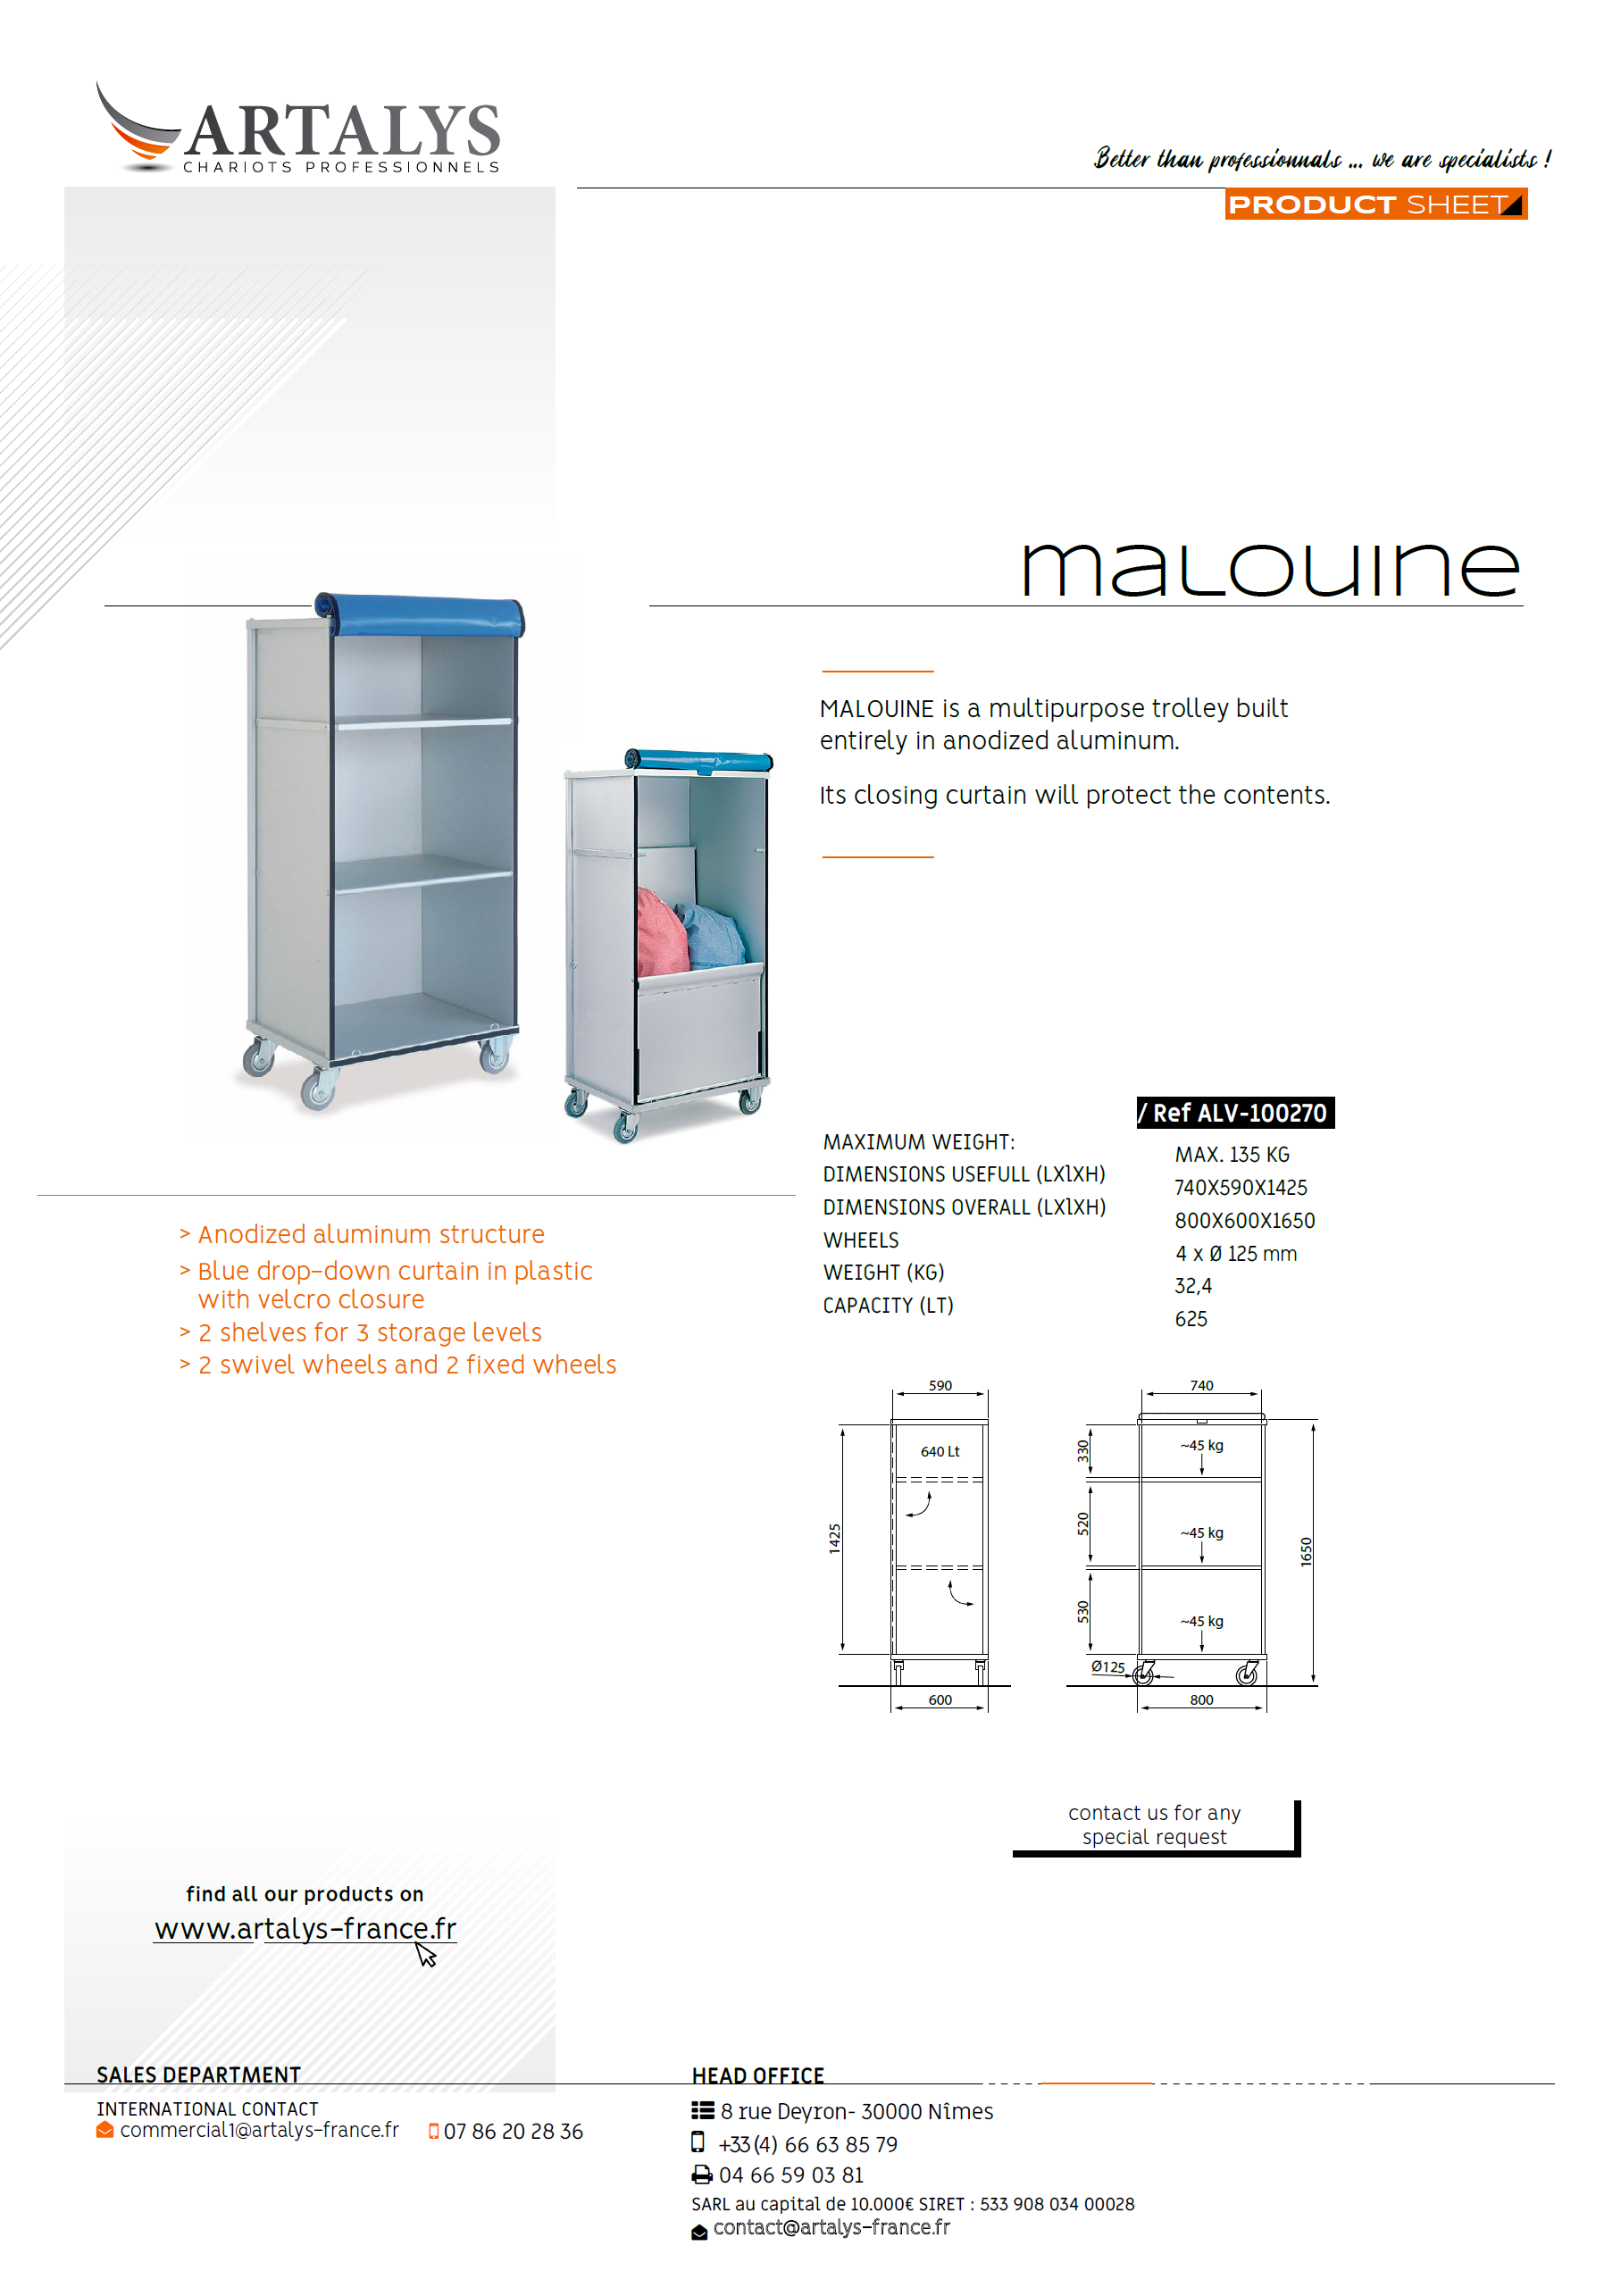 Product sheet of our Malouine lingerie trolley